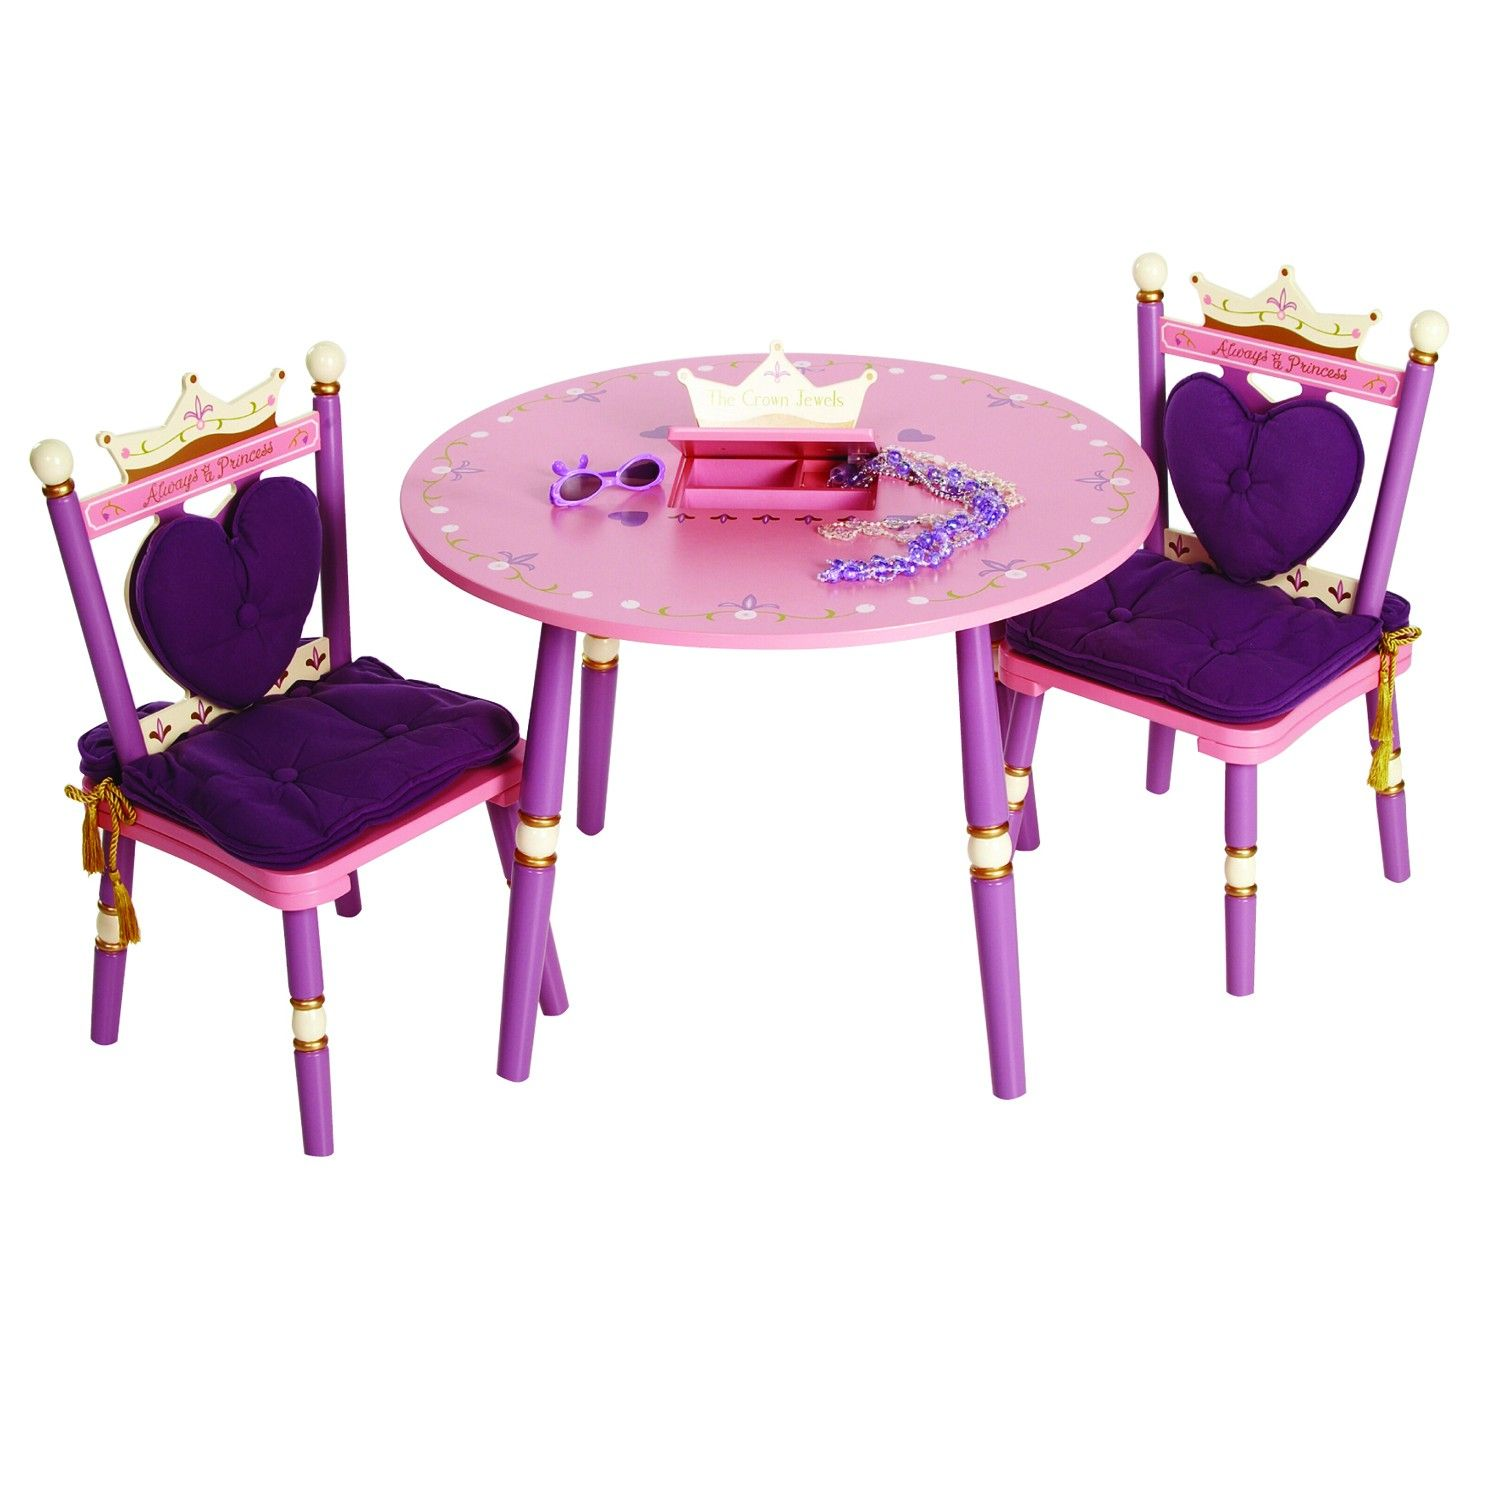 Wondrous Levels Of Discovery Princess Childs Table And Two Chair Set Complete Home Design Collection Barbaintelli Responsecom